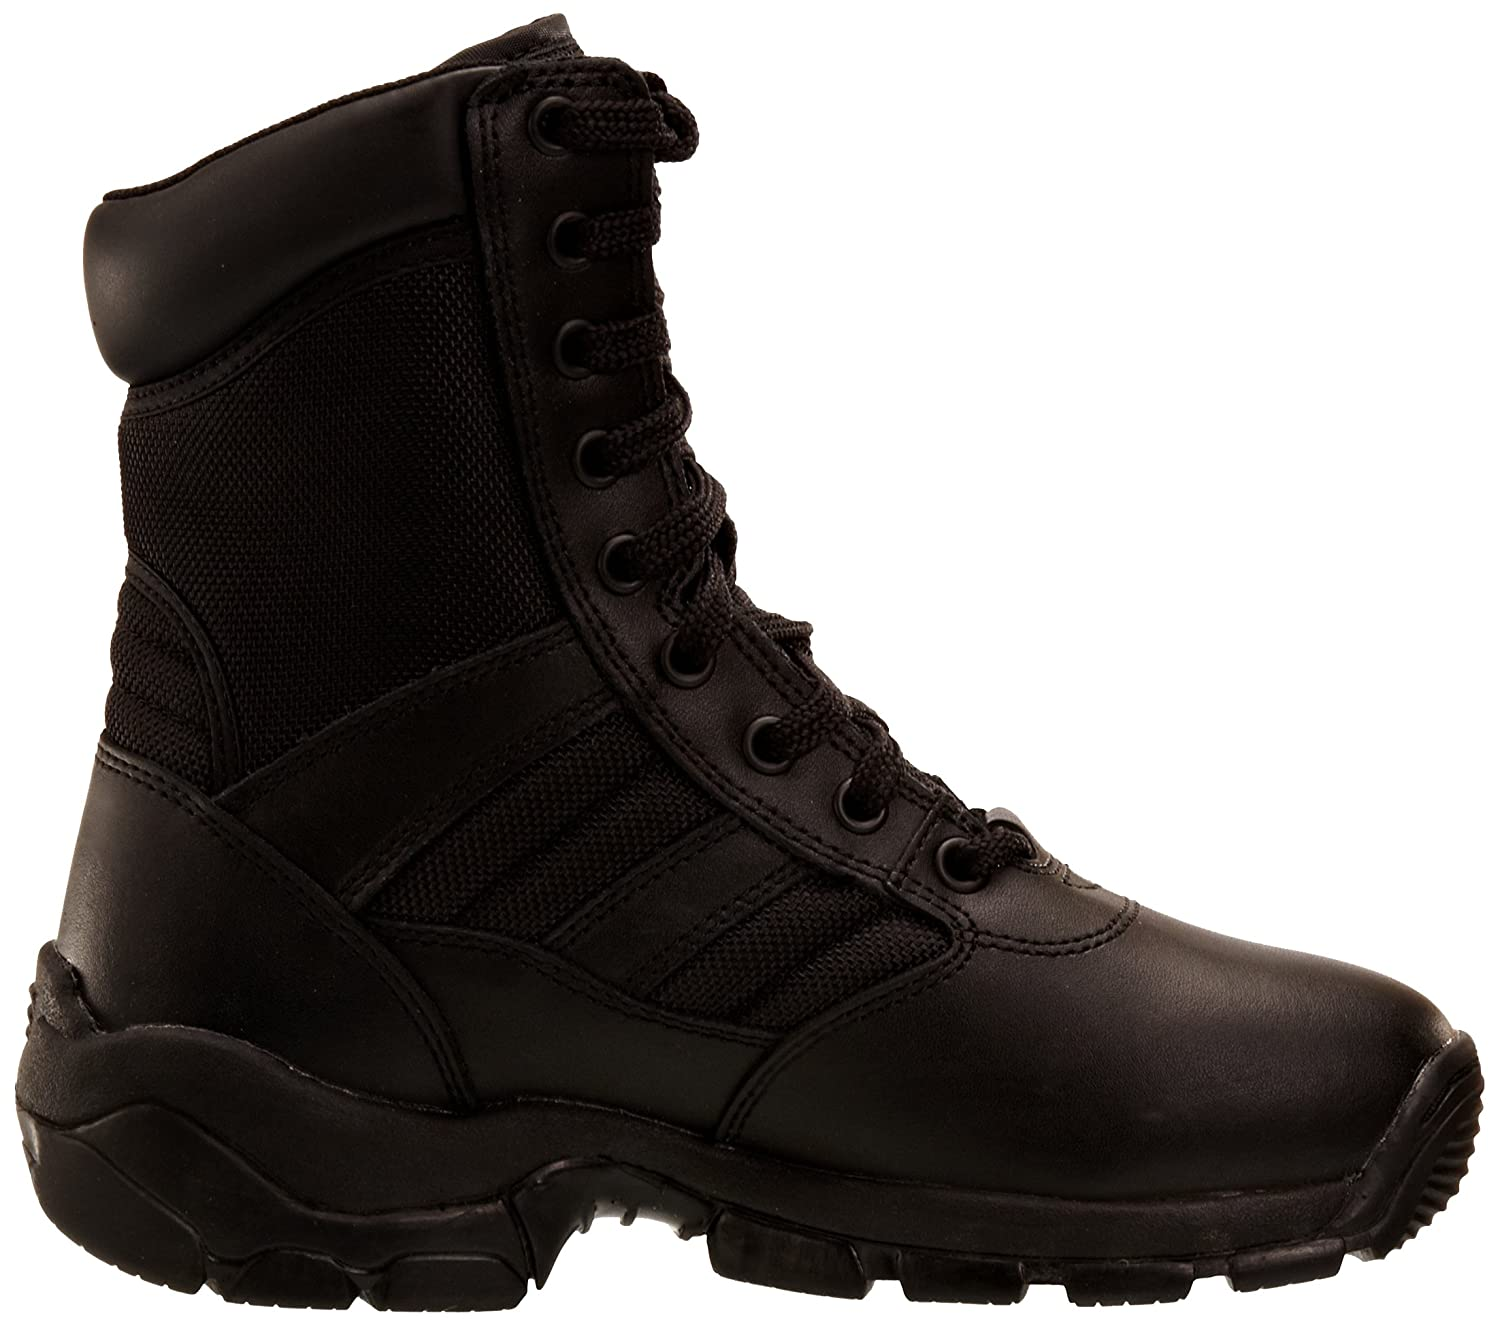 Magnum Panther 8.0 Boots M - AW17 B003BFPT2A 12 M Boots US|Black ed42e6